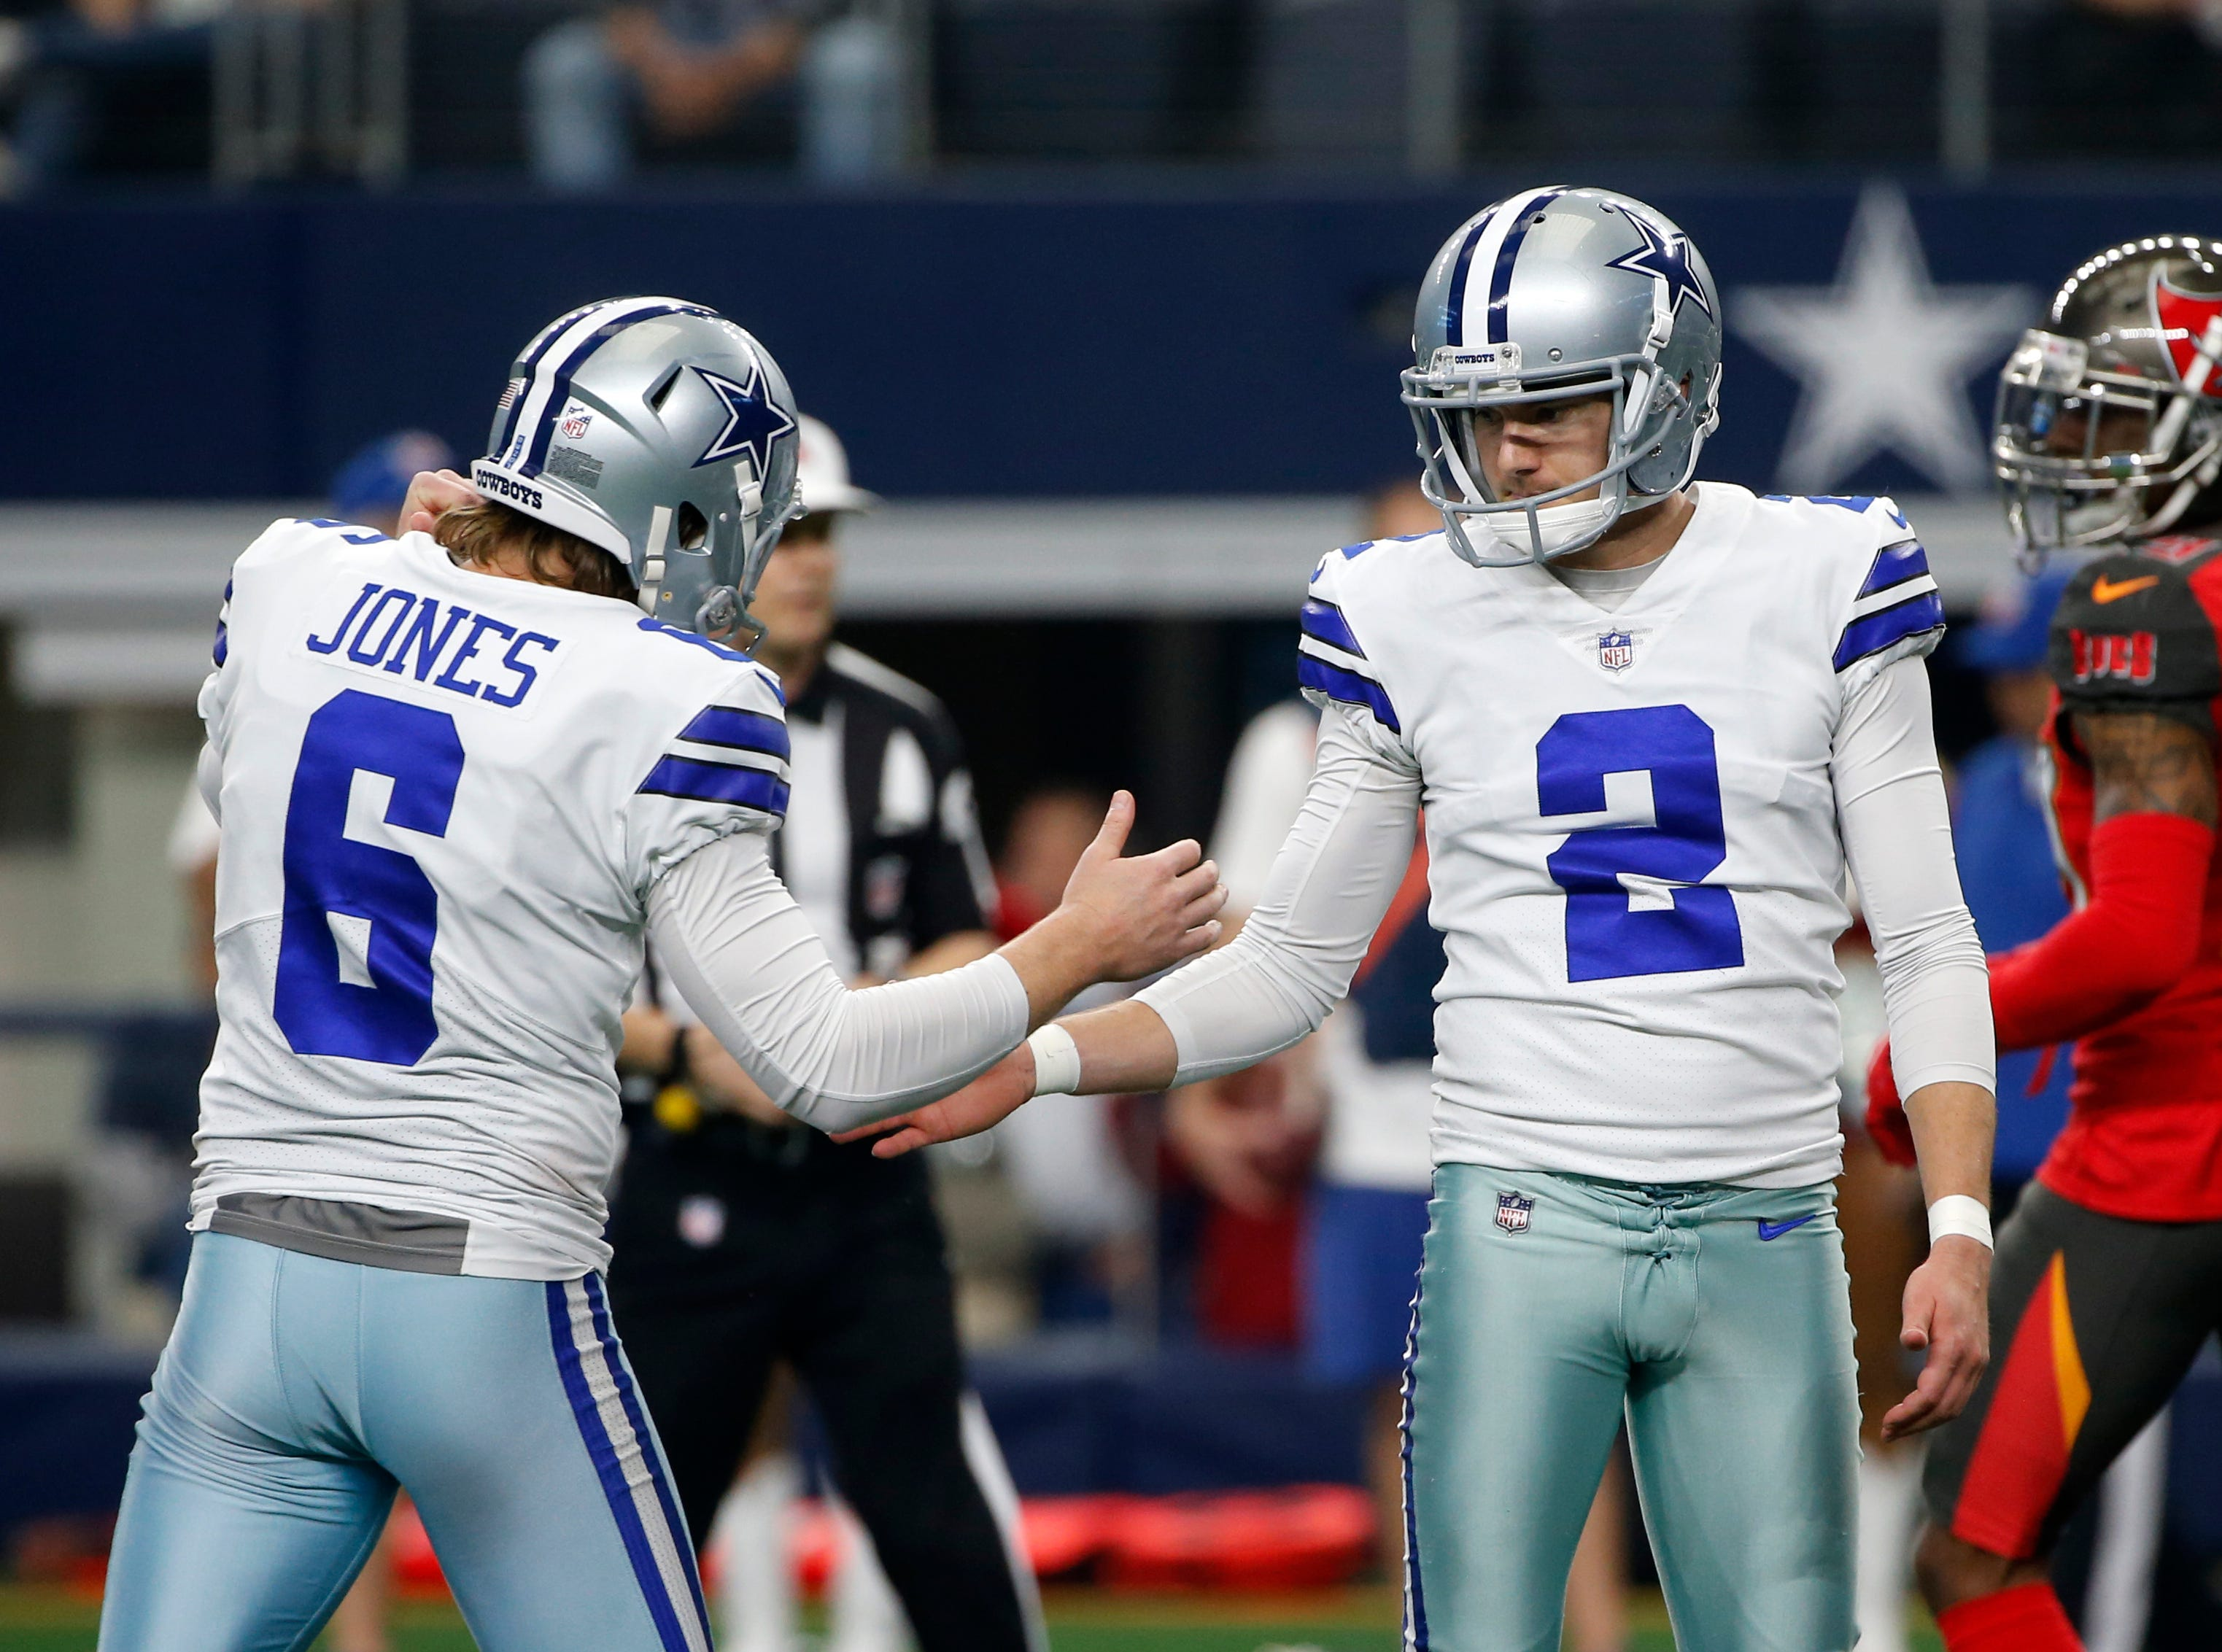 Dallas Cowboys' Chris Jones (6) and Brett Maher (2) celebrate a score during an NFL football game against the Tampa Bay Buccaneers on Sunday, Dec. 23, 2018, in Arlington, Texas. (AP Photo/Michael Ainsworth)